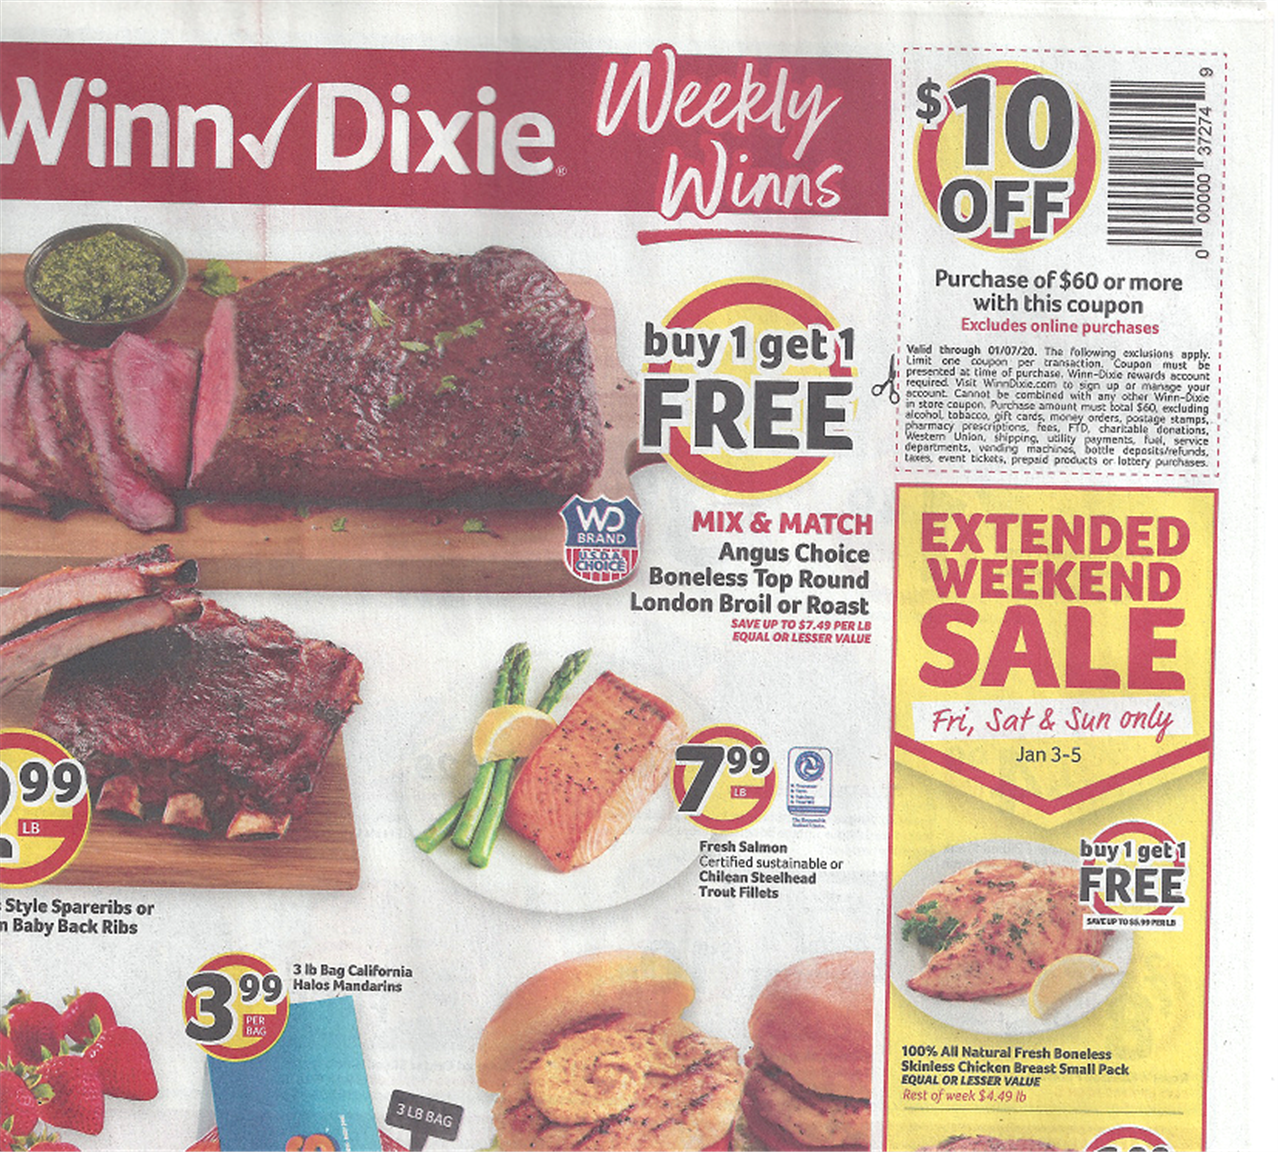 Winn Dixie – $10 Off $60 Purchase Coupon (Check Your Mailbox)